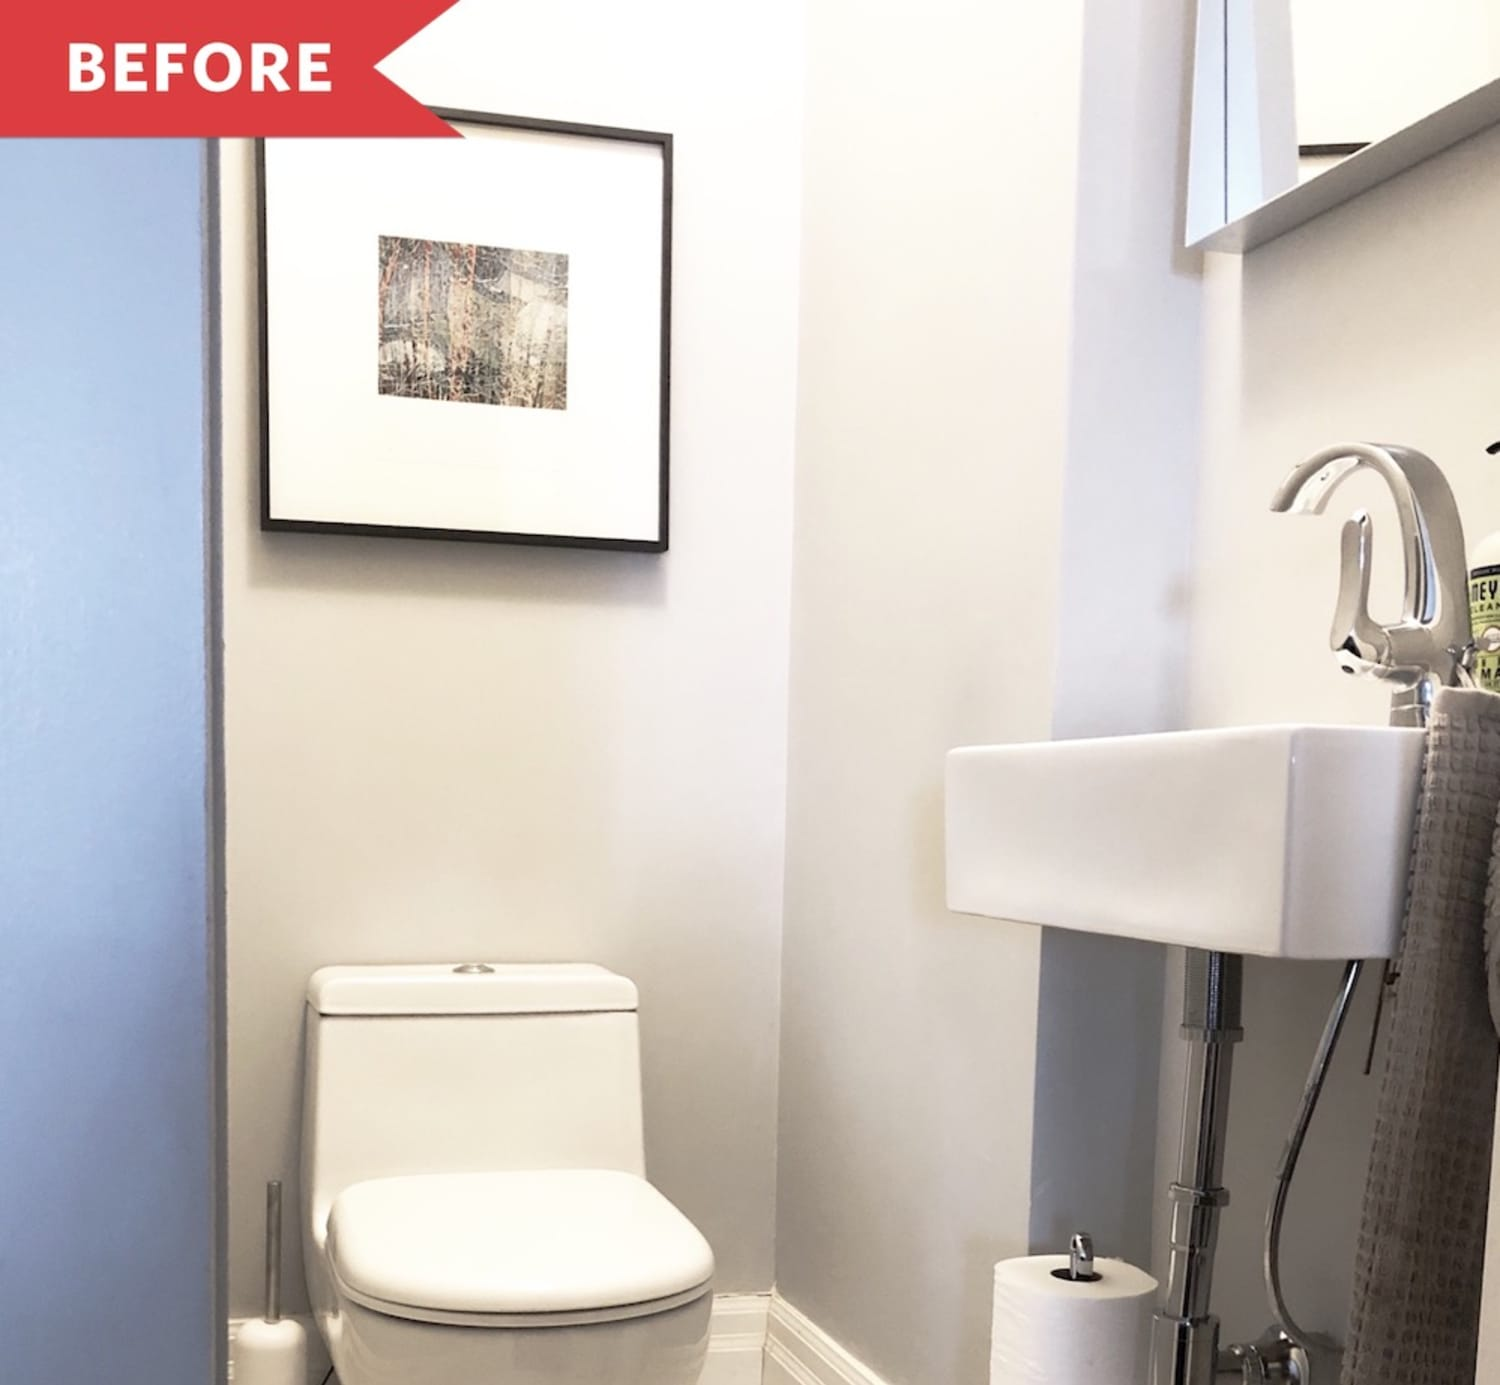 Before and After: Black Paint Made This Powder Room Feel So Much Warmer